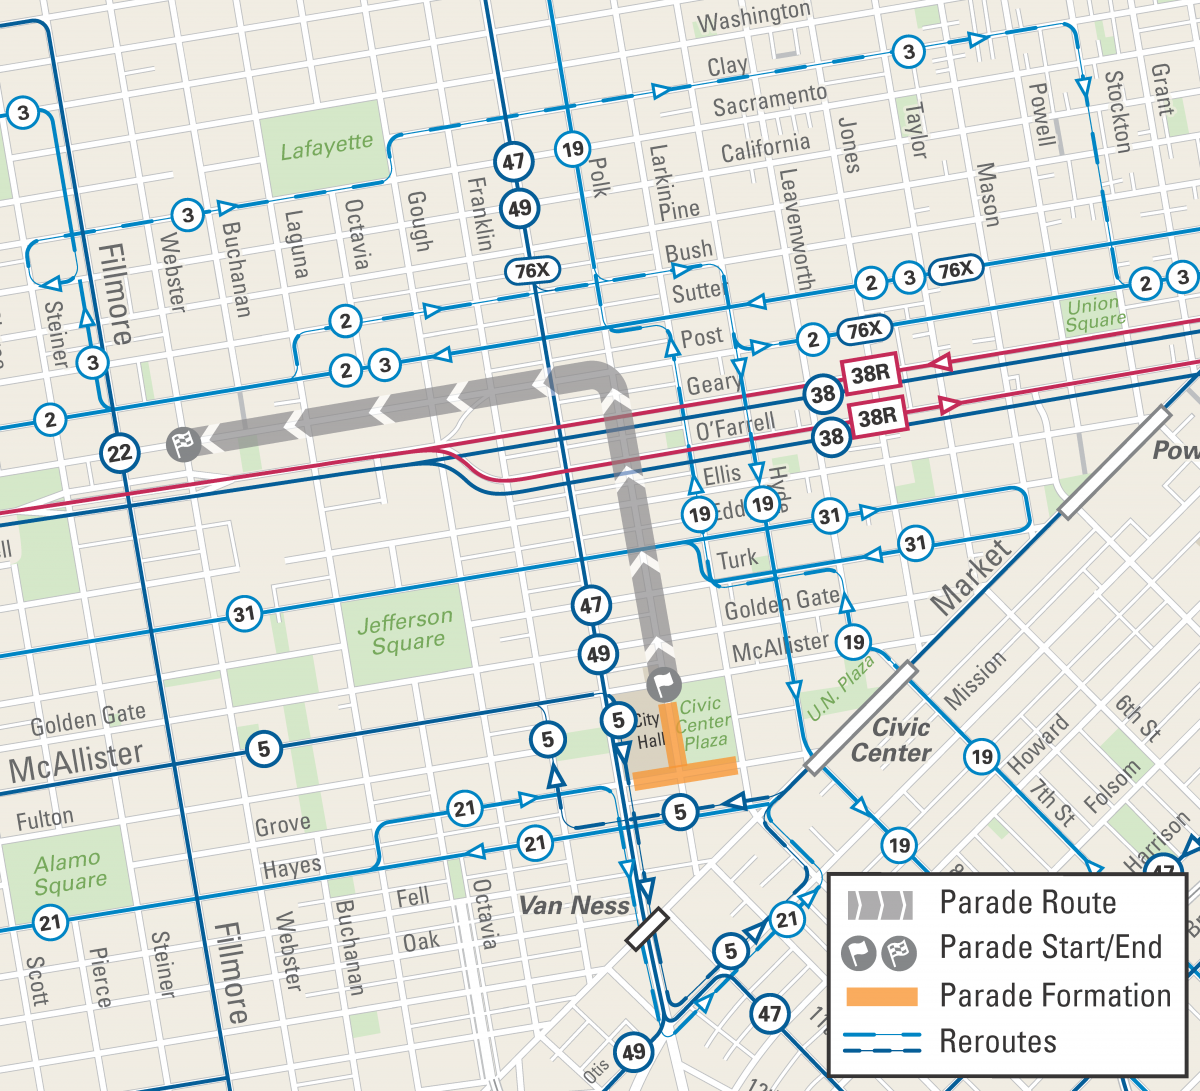 Cherry Blossom Parade: April 21, 2019 | SFMTA on septa route map, san francisco streetcar route map, pierce transit route map, mbta route map, samtrans route map, bart route map, caltrain route map, golden gate ferry route map, ac transit route map, j train route map, mta route map, golden gate transit route map, sound transit route map, bus route map, greyhound route map, amtrak route map, san diego trolley route map, metro route map, metrolink route map, vta route map,